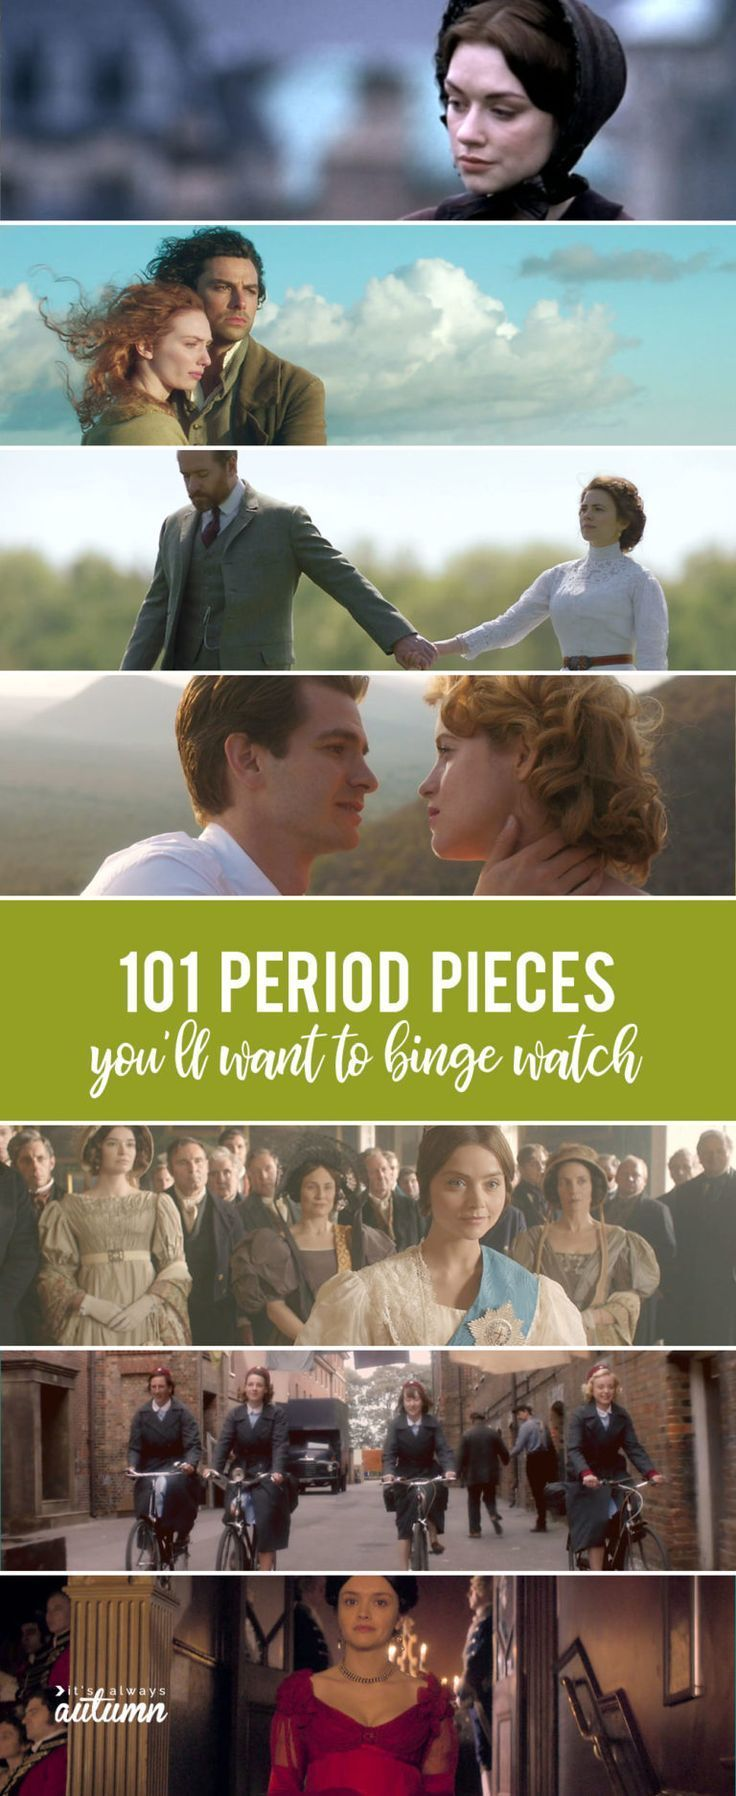 101 of the best period movies period drama historical romance movies and more! #romancemovies #romance #movies #to #watch